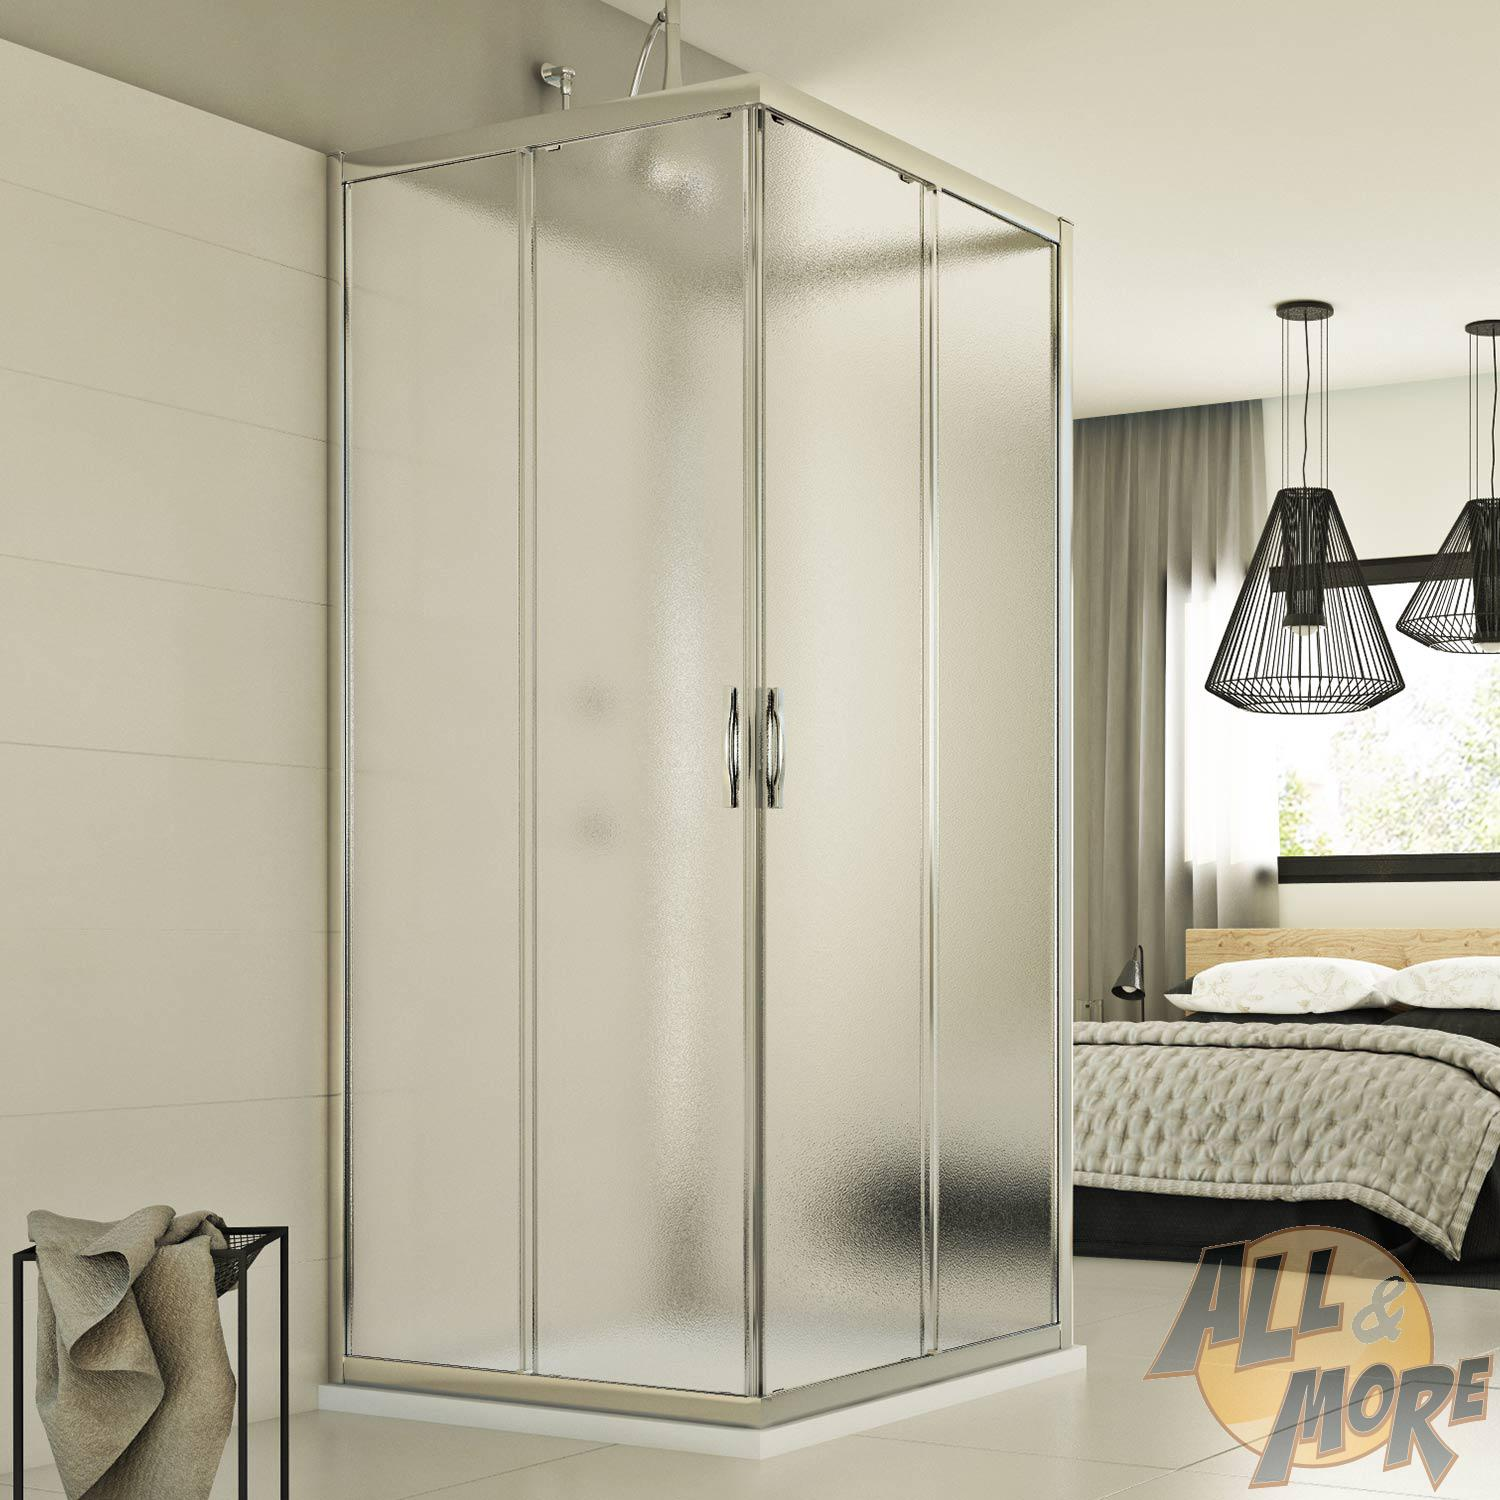 cabine de douche 3 parois 90x120x90 cm verre opaque ouverture coulissant ebay. Black Bedroom Furniture Sets. Home Design Ideas